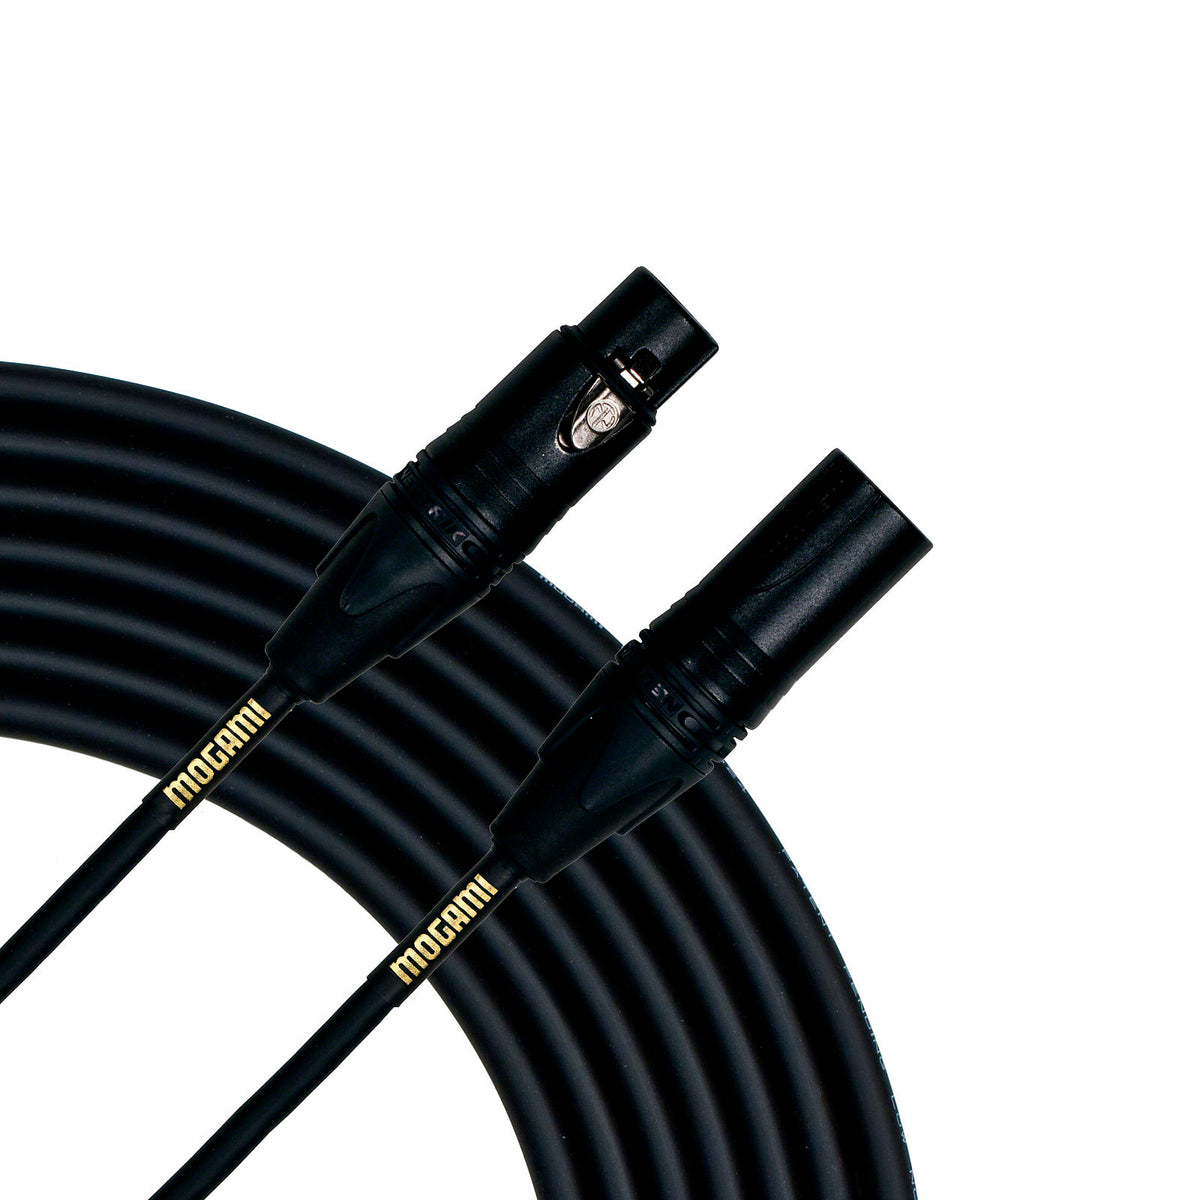 Mogami Gold Studio Microphone Cable, 25 Foot